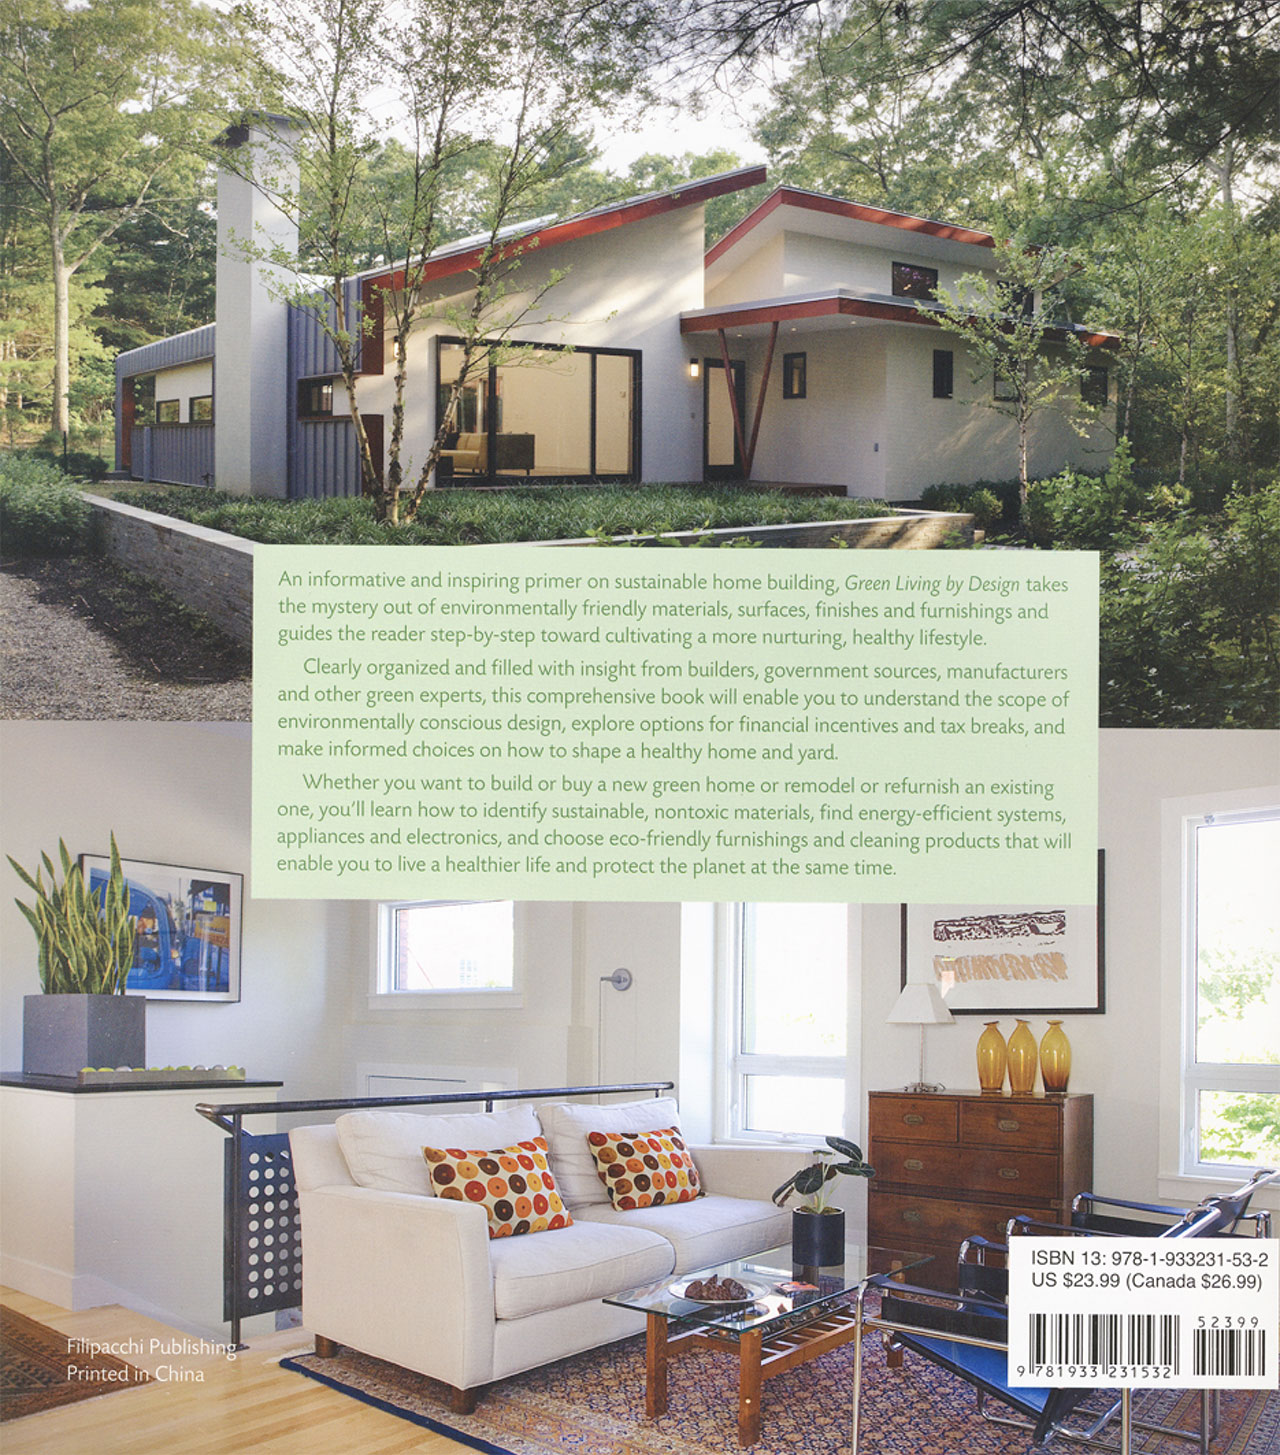 06_News_GREEN-LIVING-BY-DESIGN-by-J-Nayar-2_web_w1280